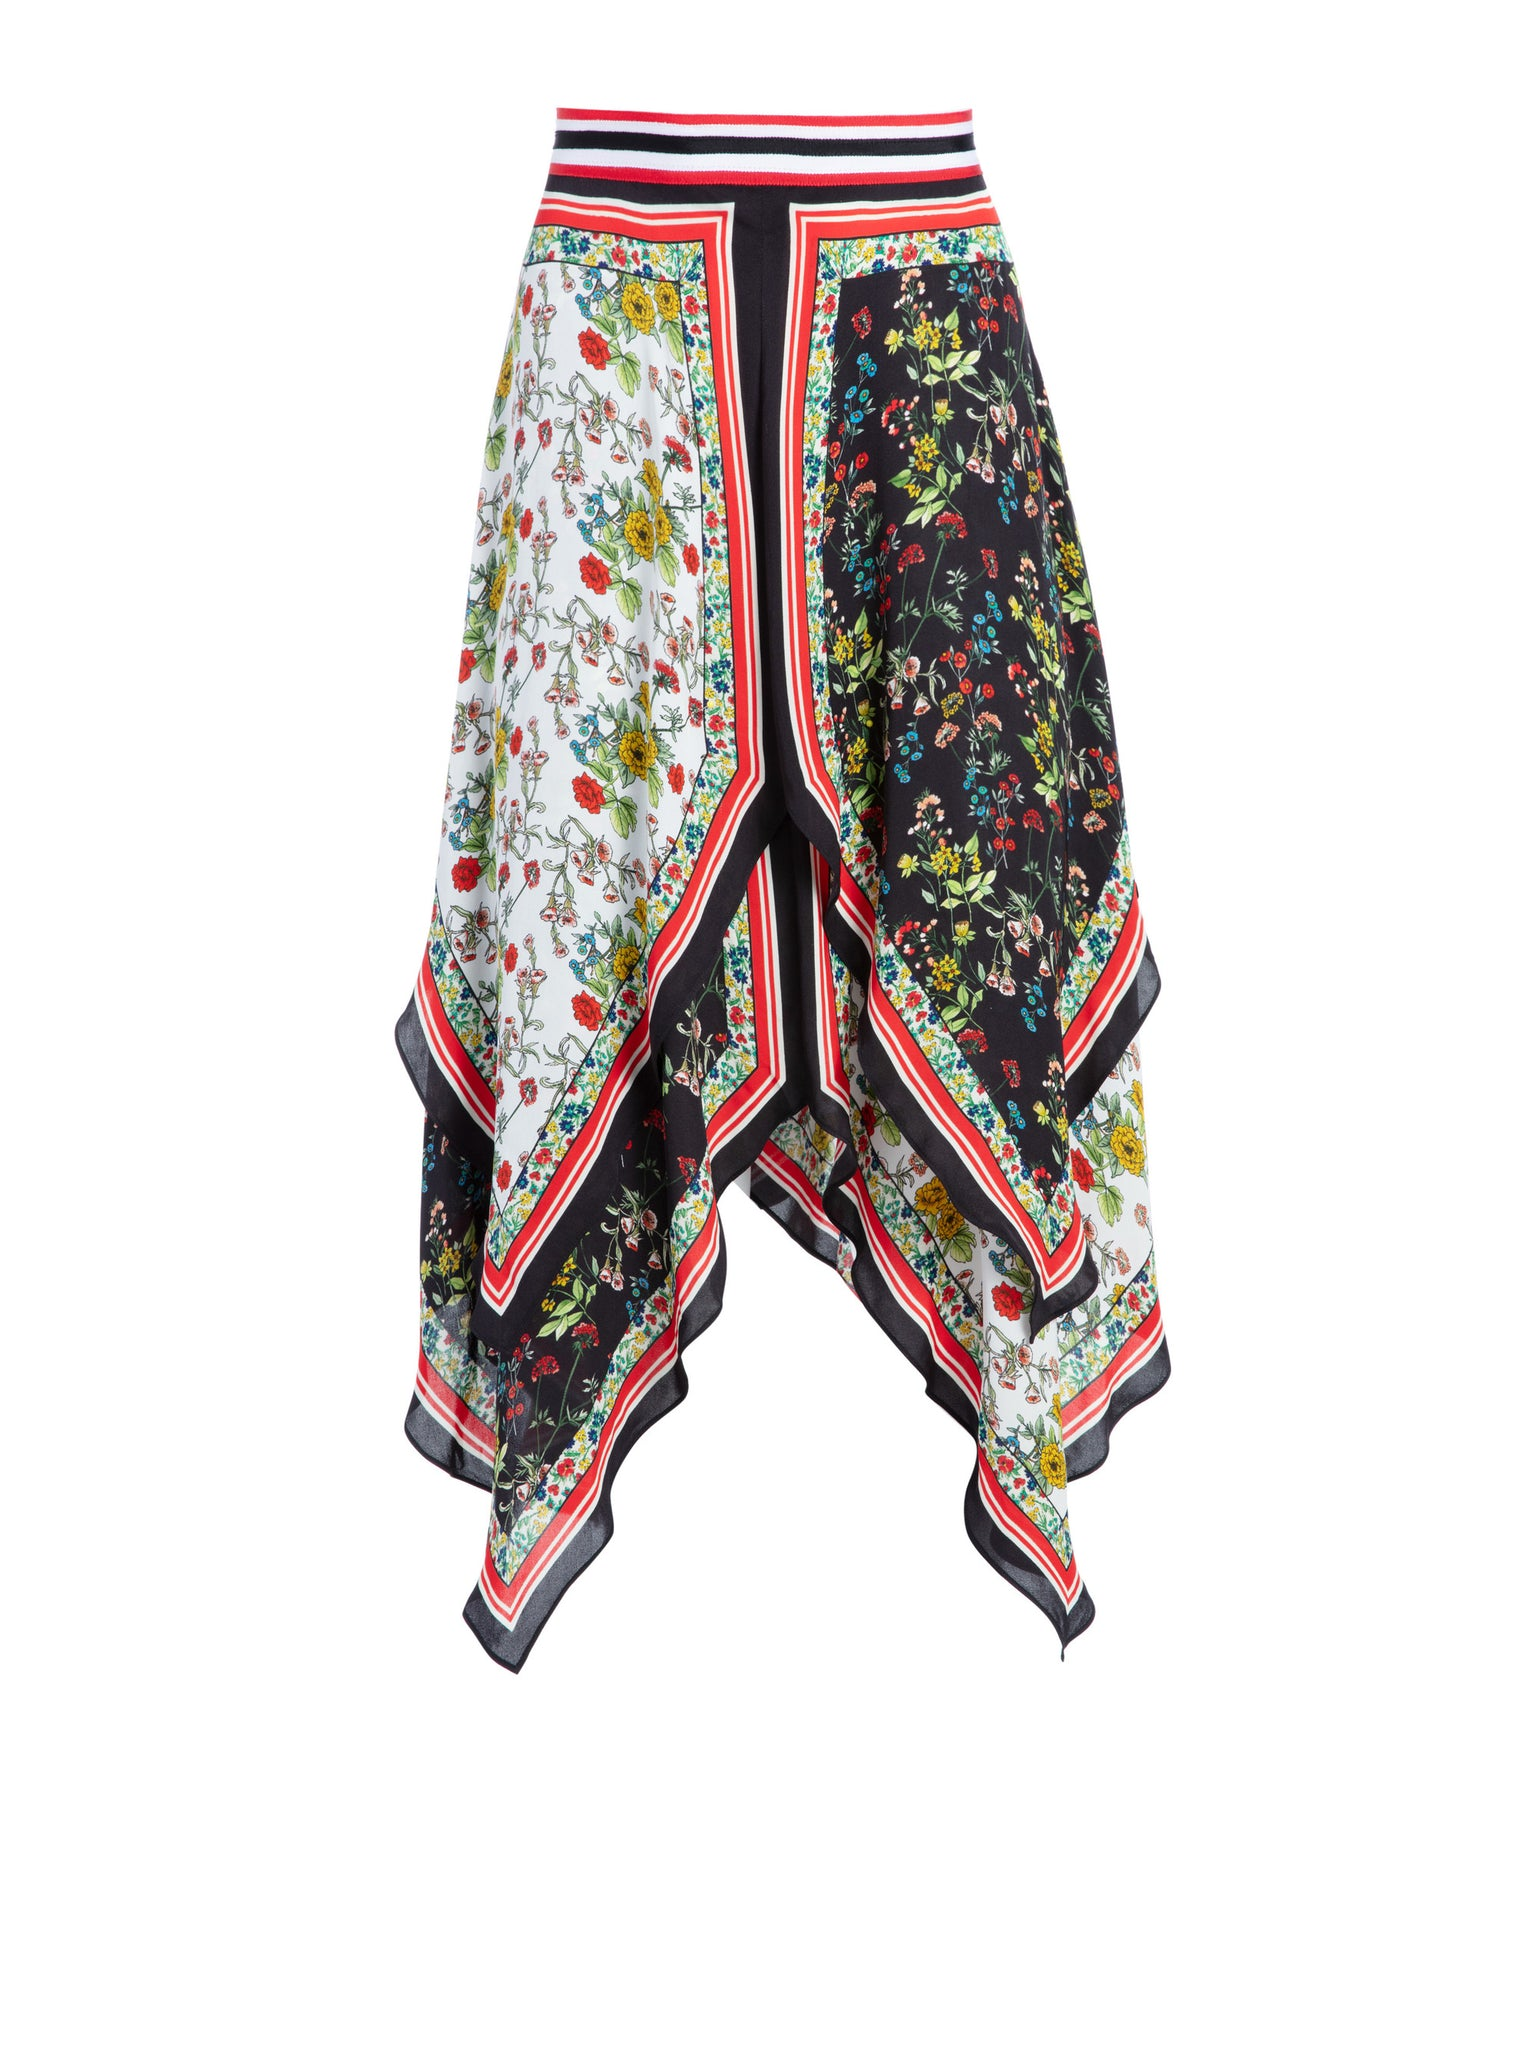 b58c07f9543 Load image into Gallery viewer, Maura Skirt - Scarf Print ...